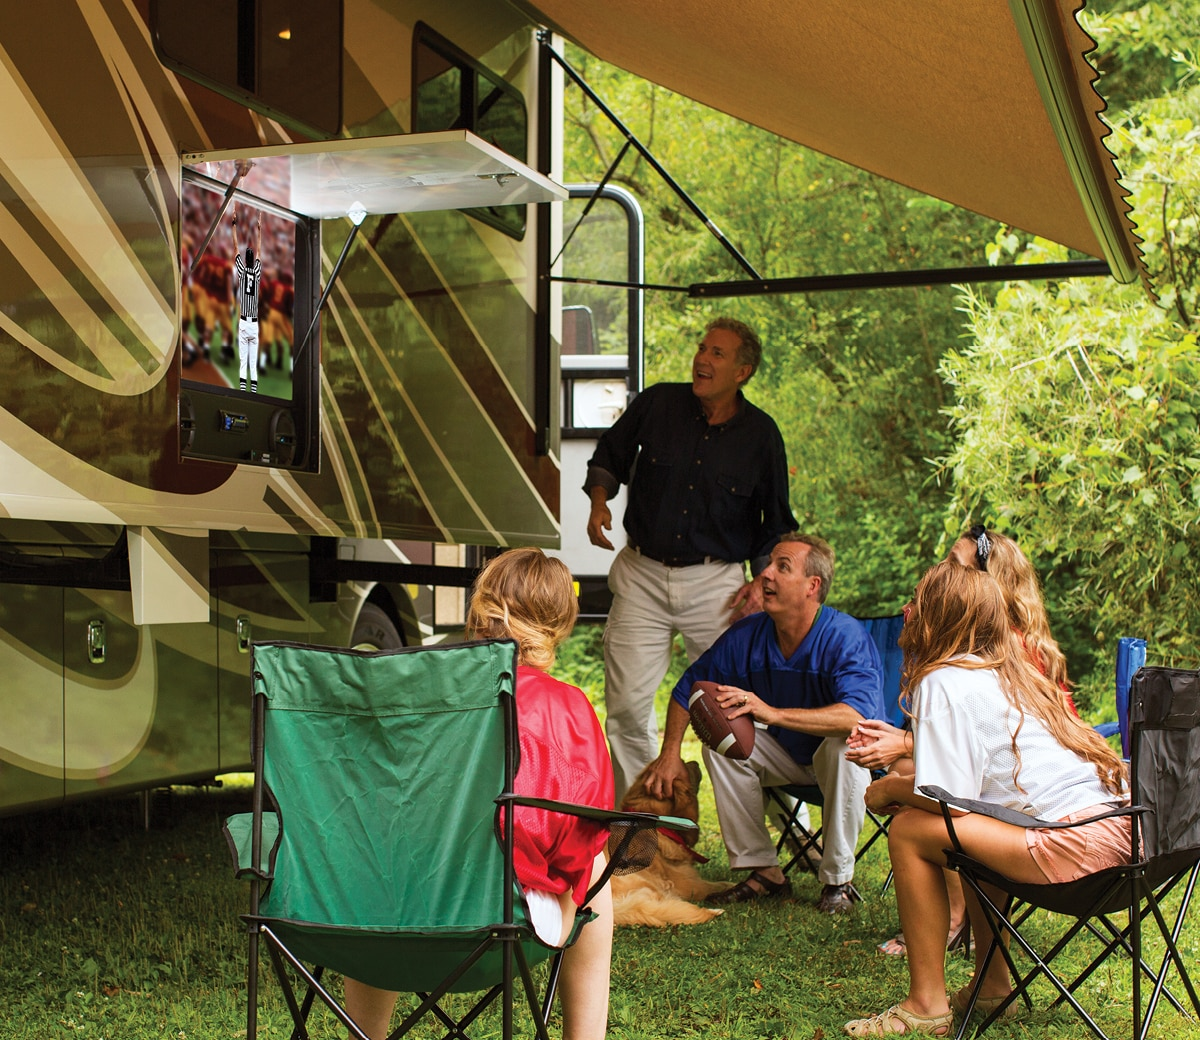 RV television uses energy.